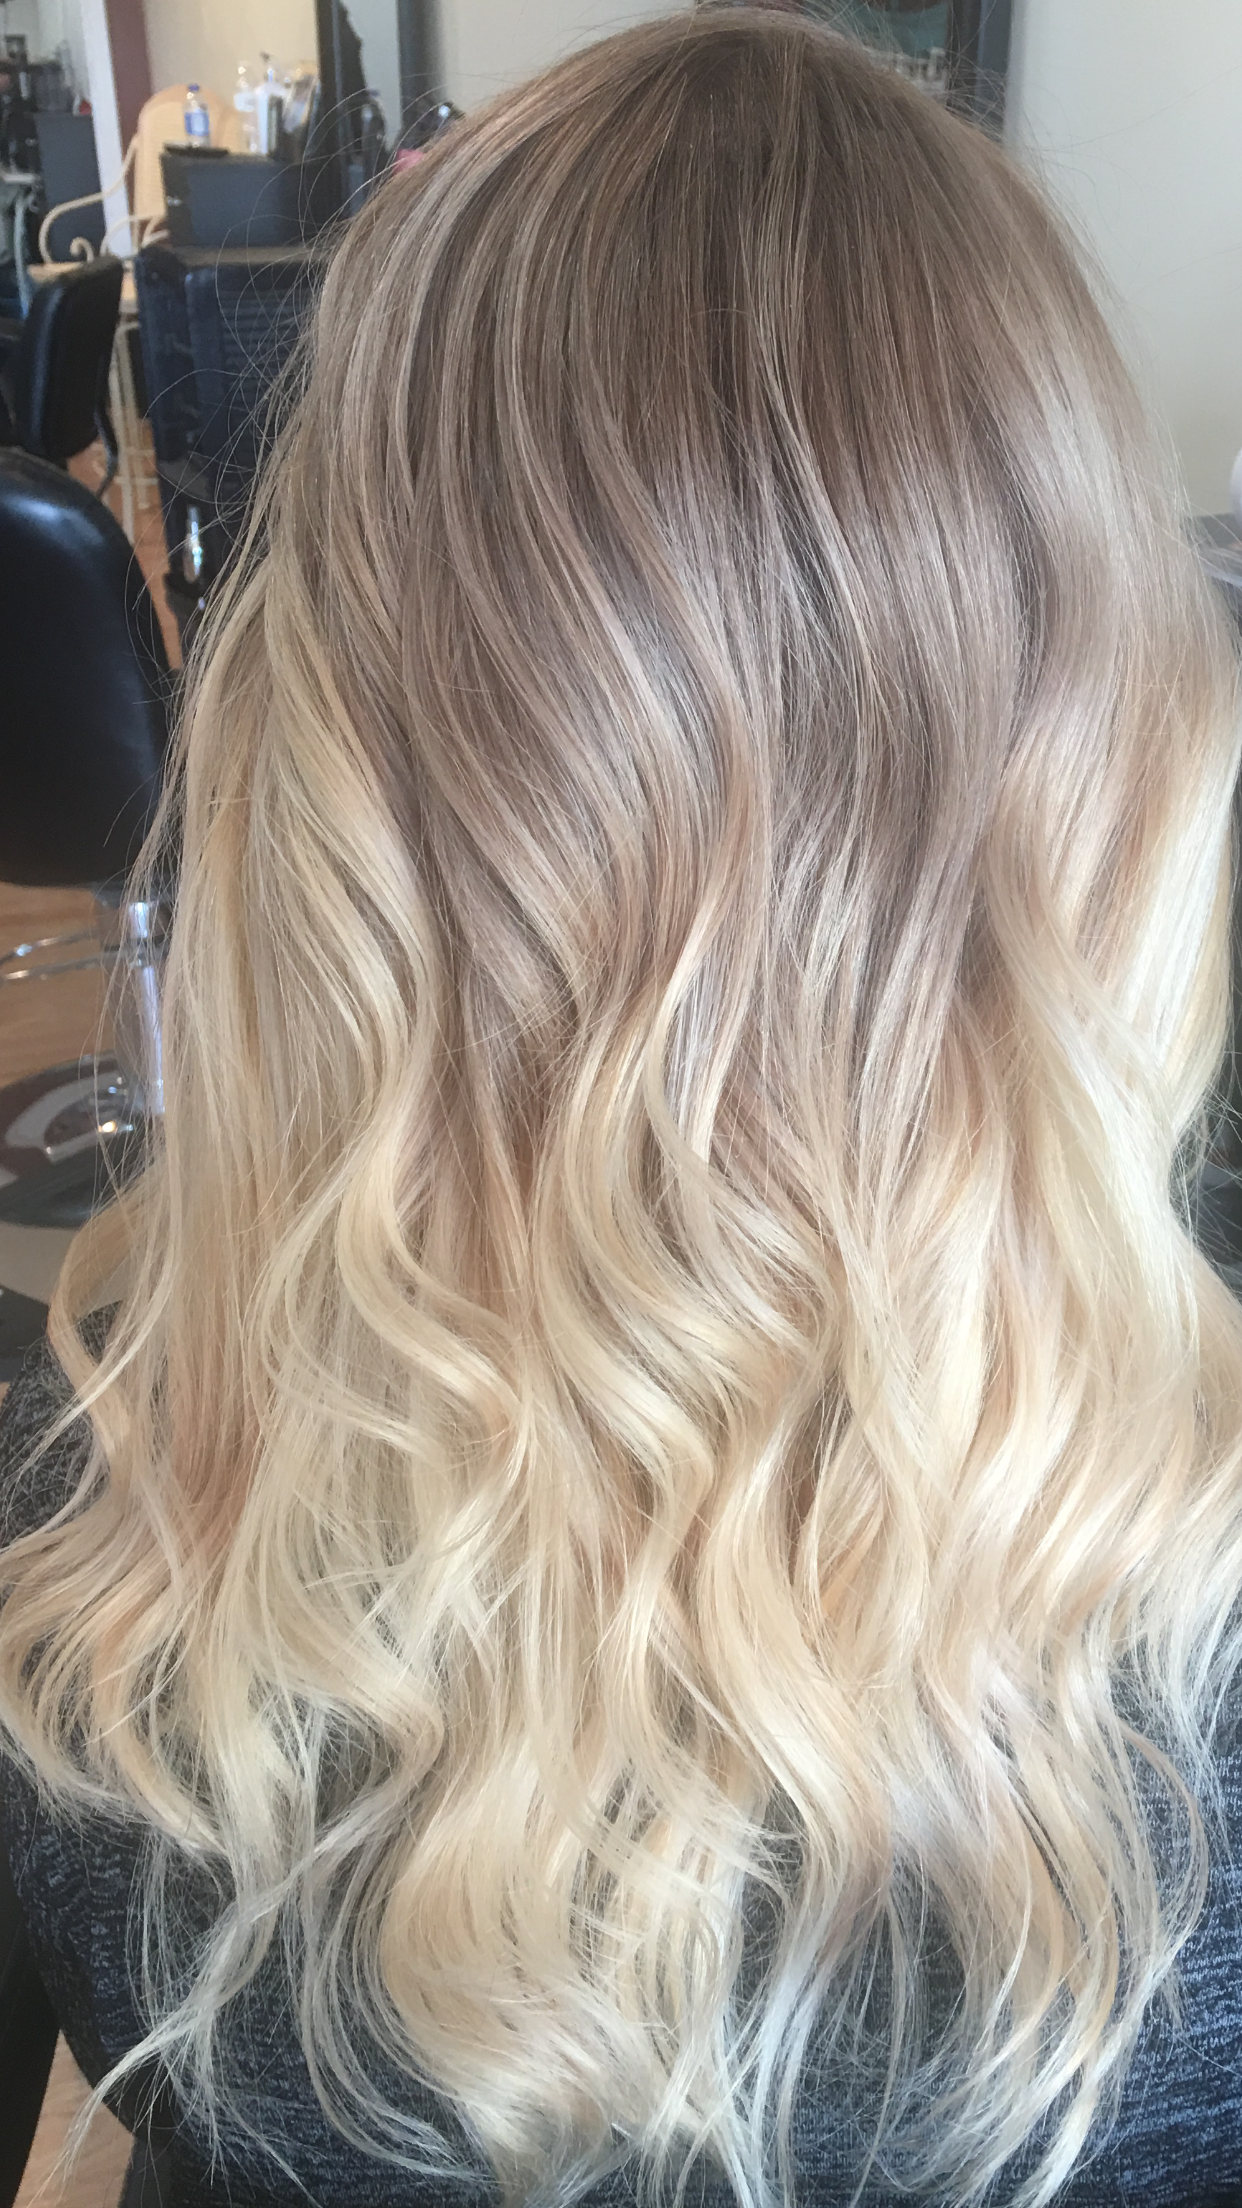 ashy blonde ombr balayage hair i did pinterest ashy blonde balayage and blondes. Black Bedroom Furniture Sets. Home Design Ideas